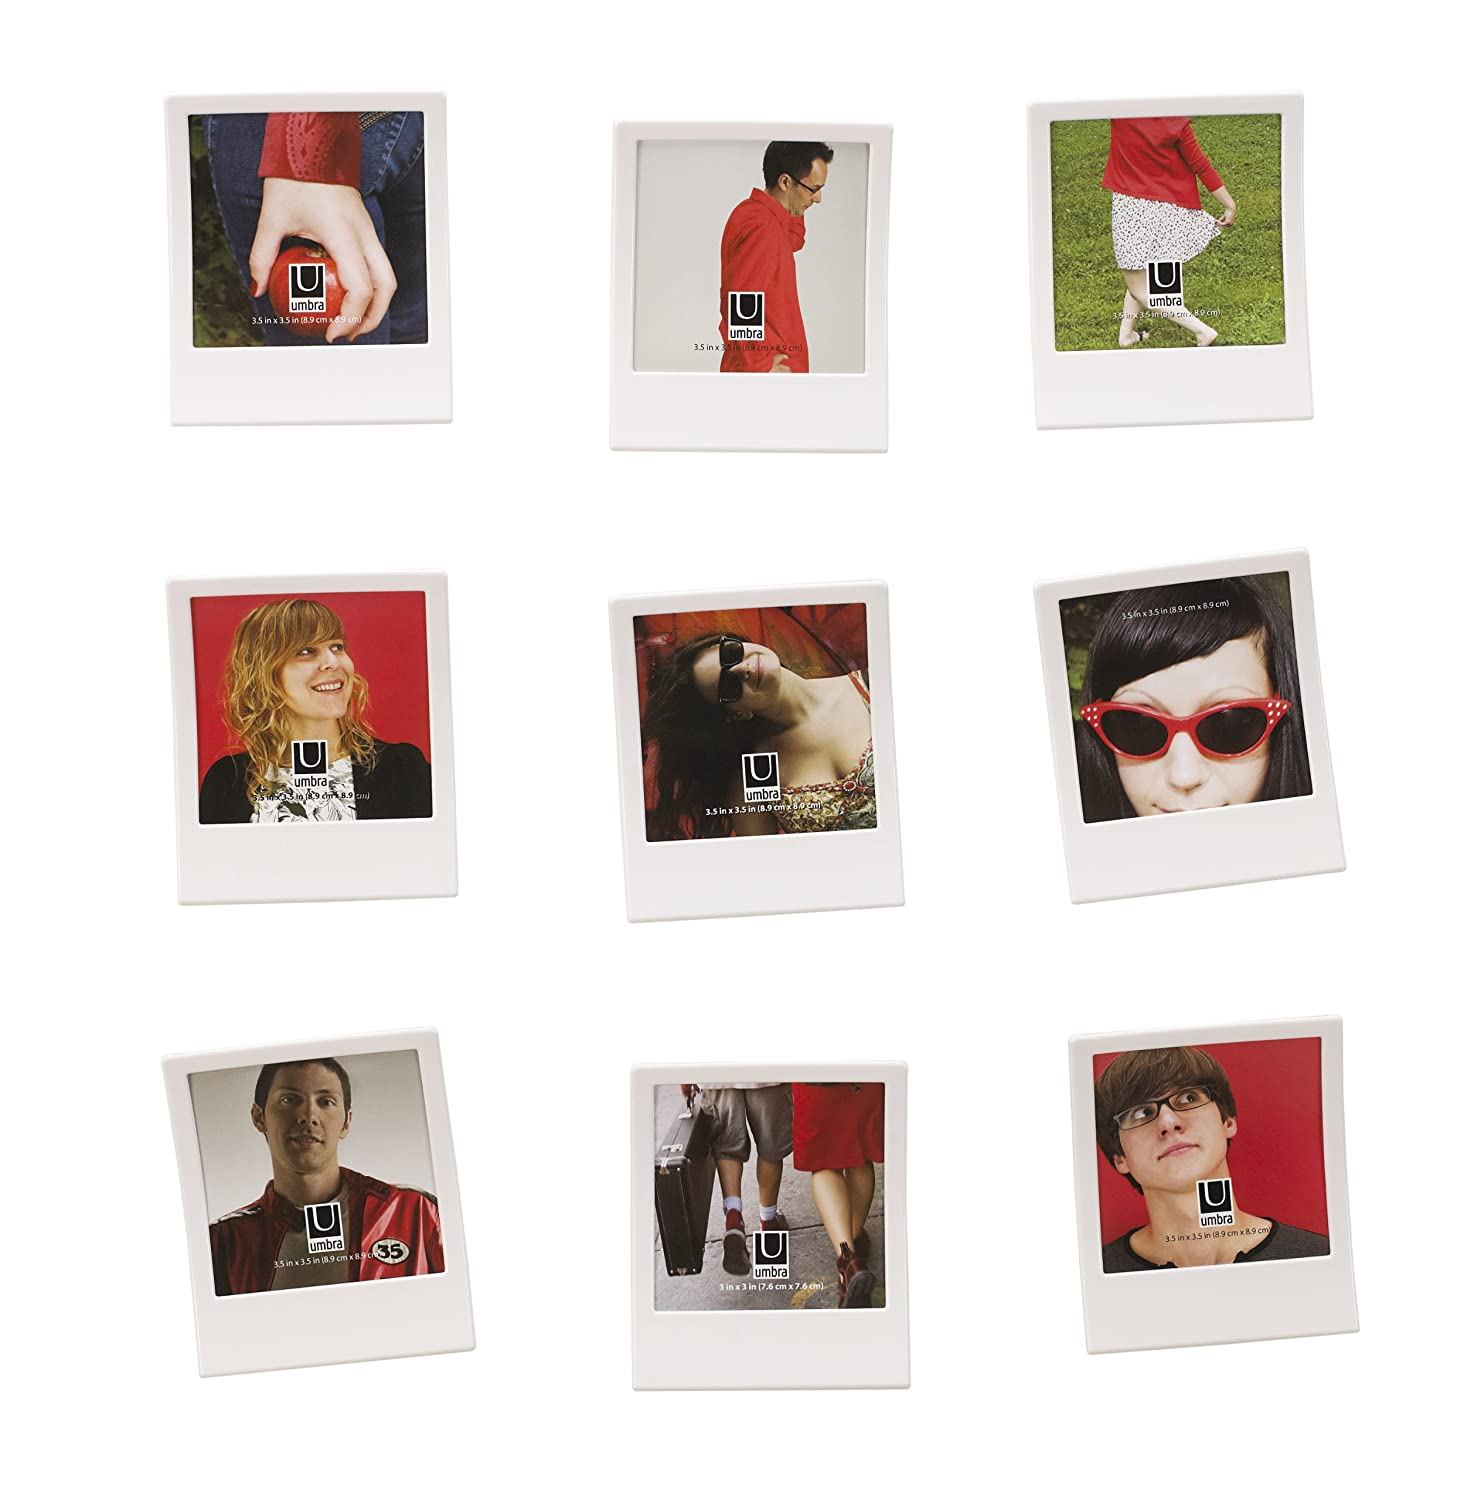 Amazon.com - Umbra Snap 3.5-Inch-by-3.5-Inch Frame, Set of 9, White ...